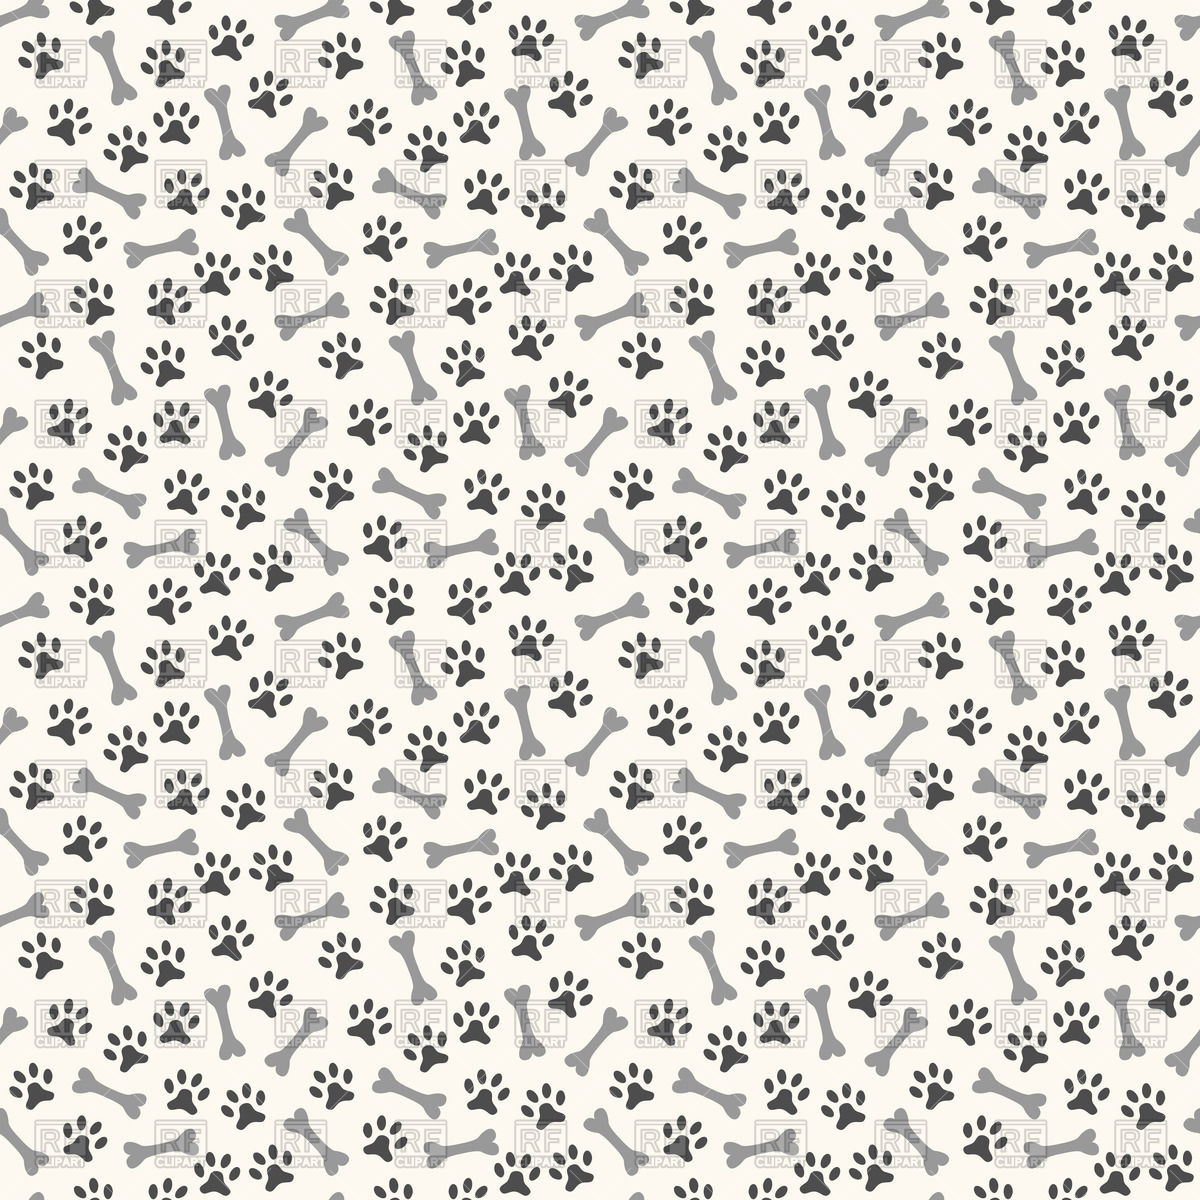 Animal seamless pattern with print of paws and bones Vector Image.